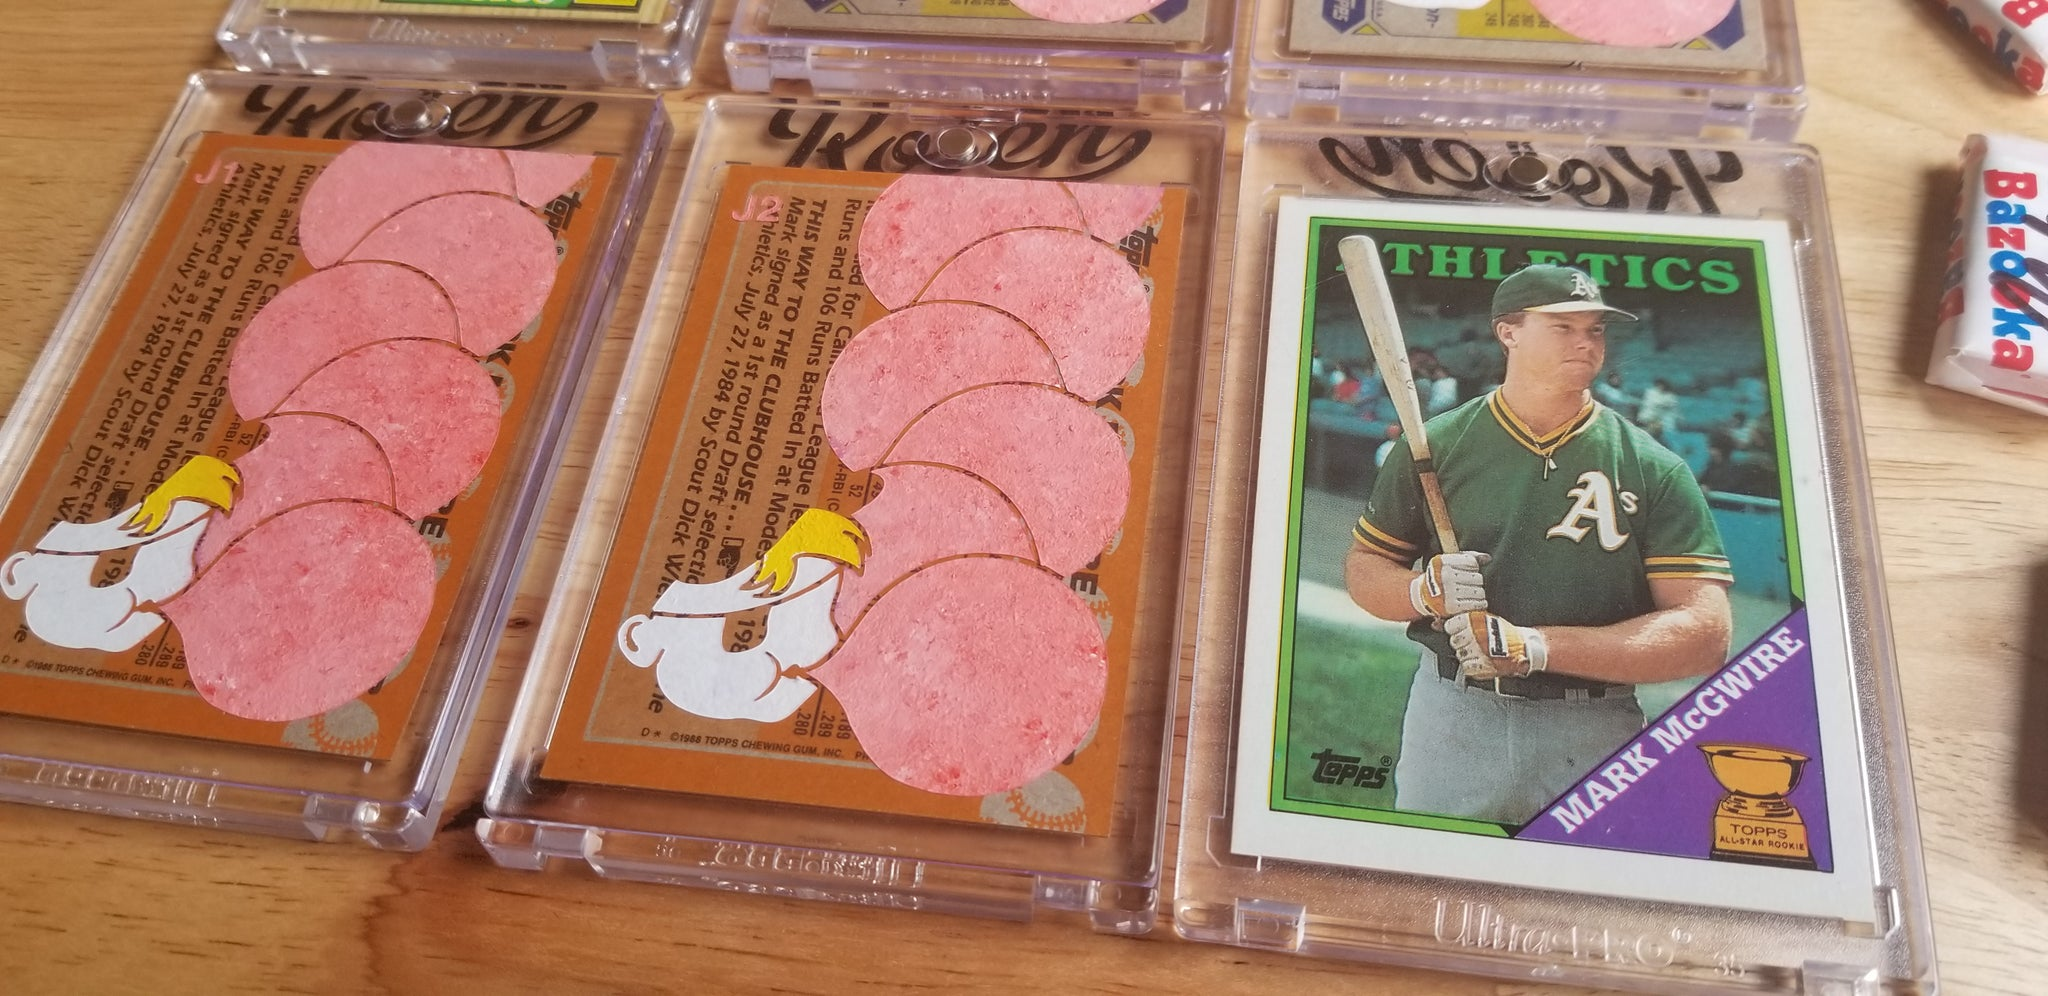 Baseball card art by Matthew Lee Rosen (aka Matthew Rosen) - Canseco and McGwire